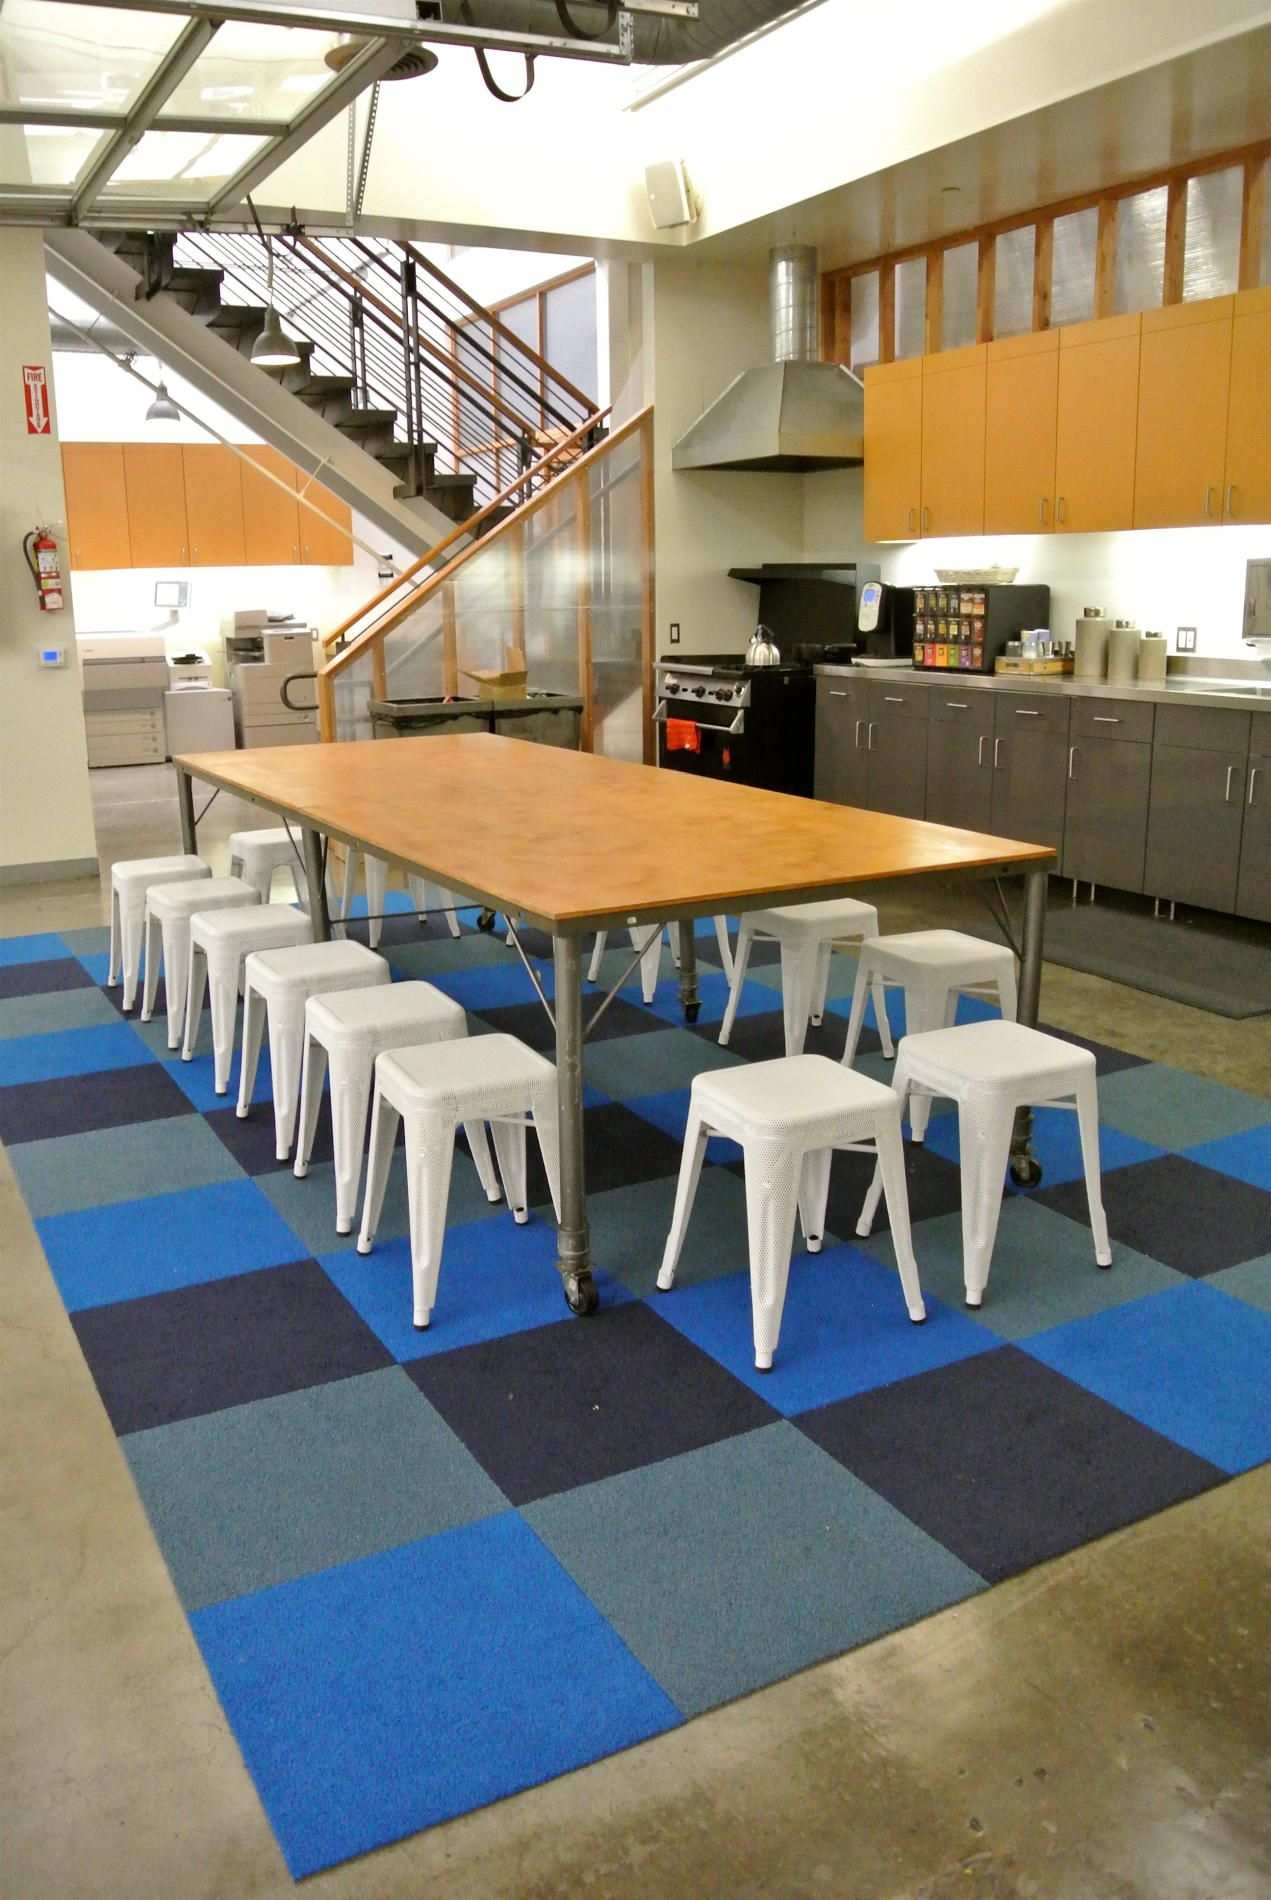 Shryne Design Globe Office Kitchen   Carpet Tiles   Ss Colours? Use Diff  Colour Tiles In Diff Areas   Chill Out.